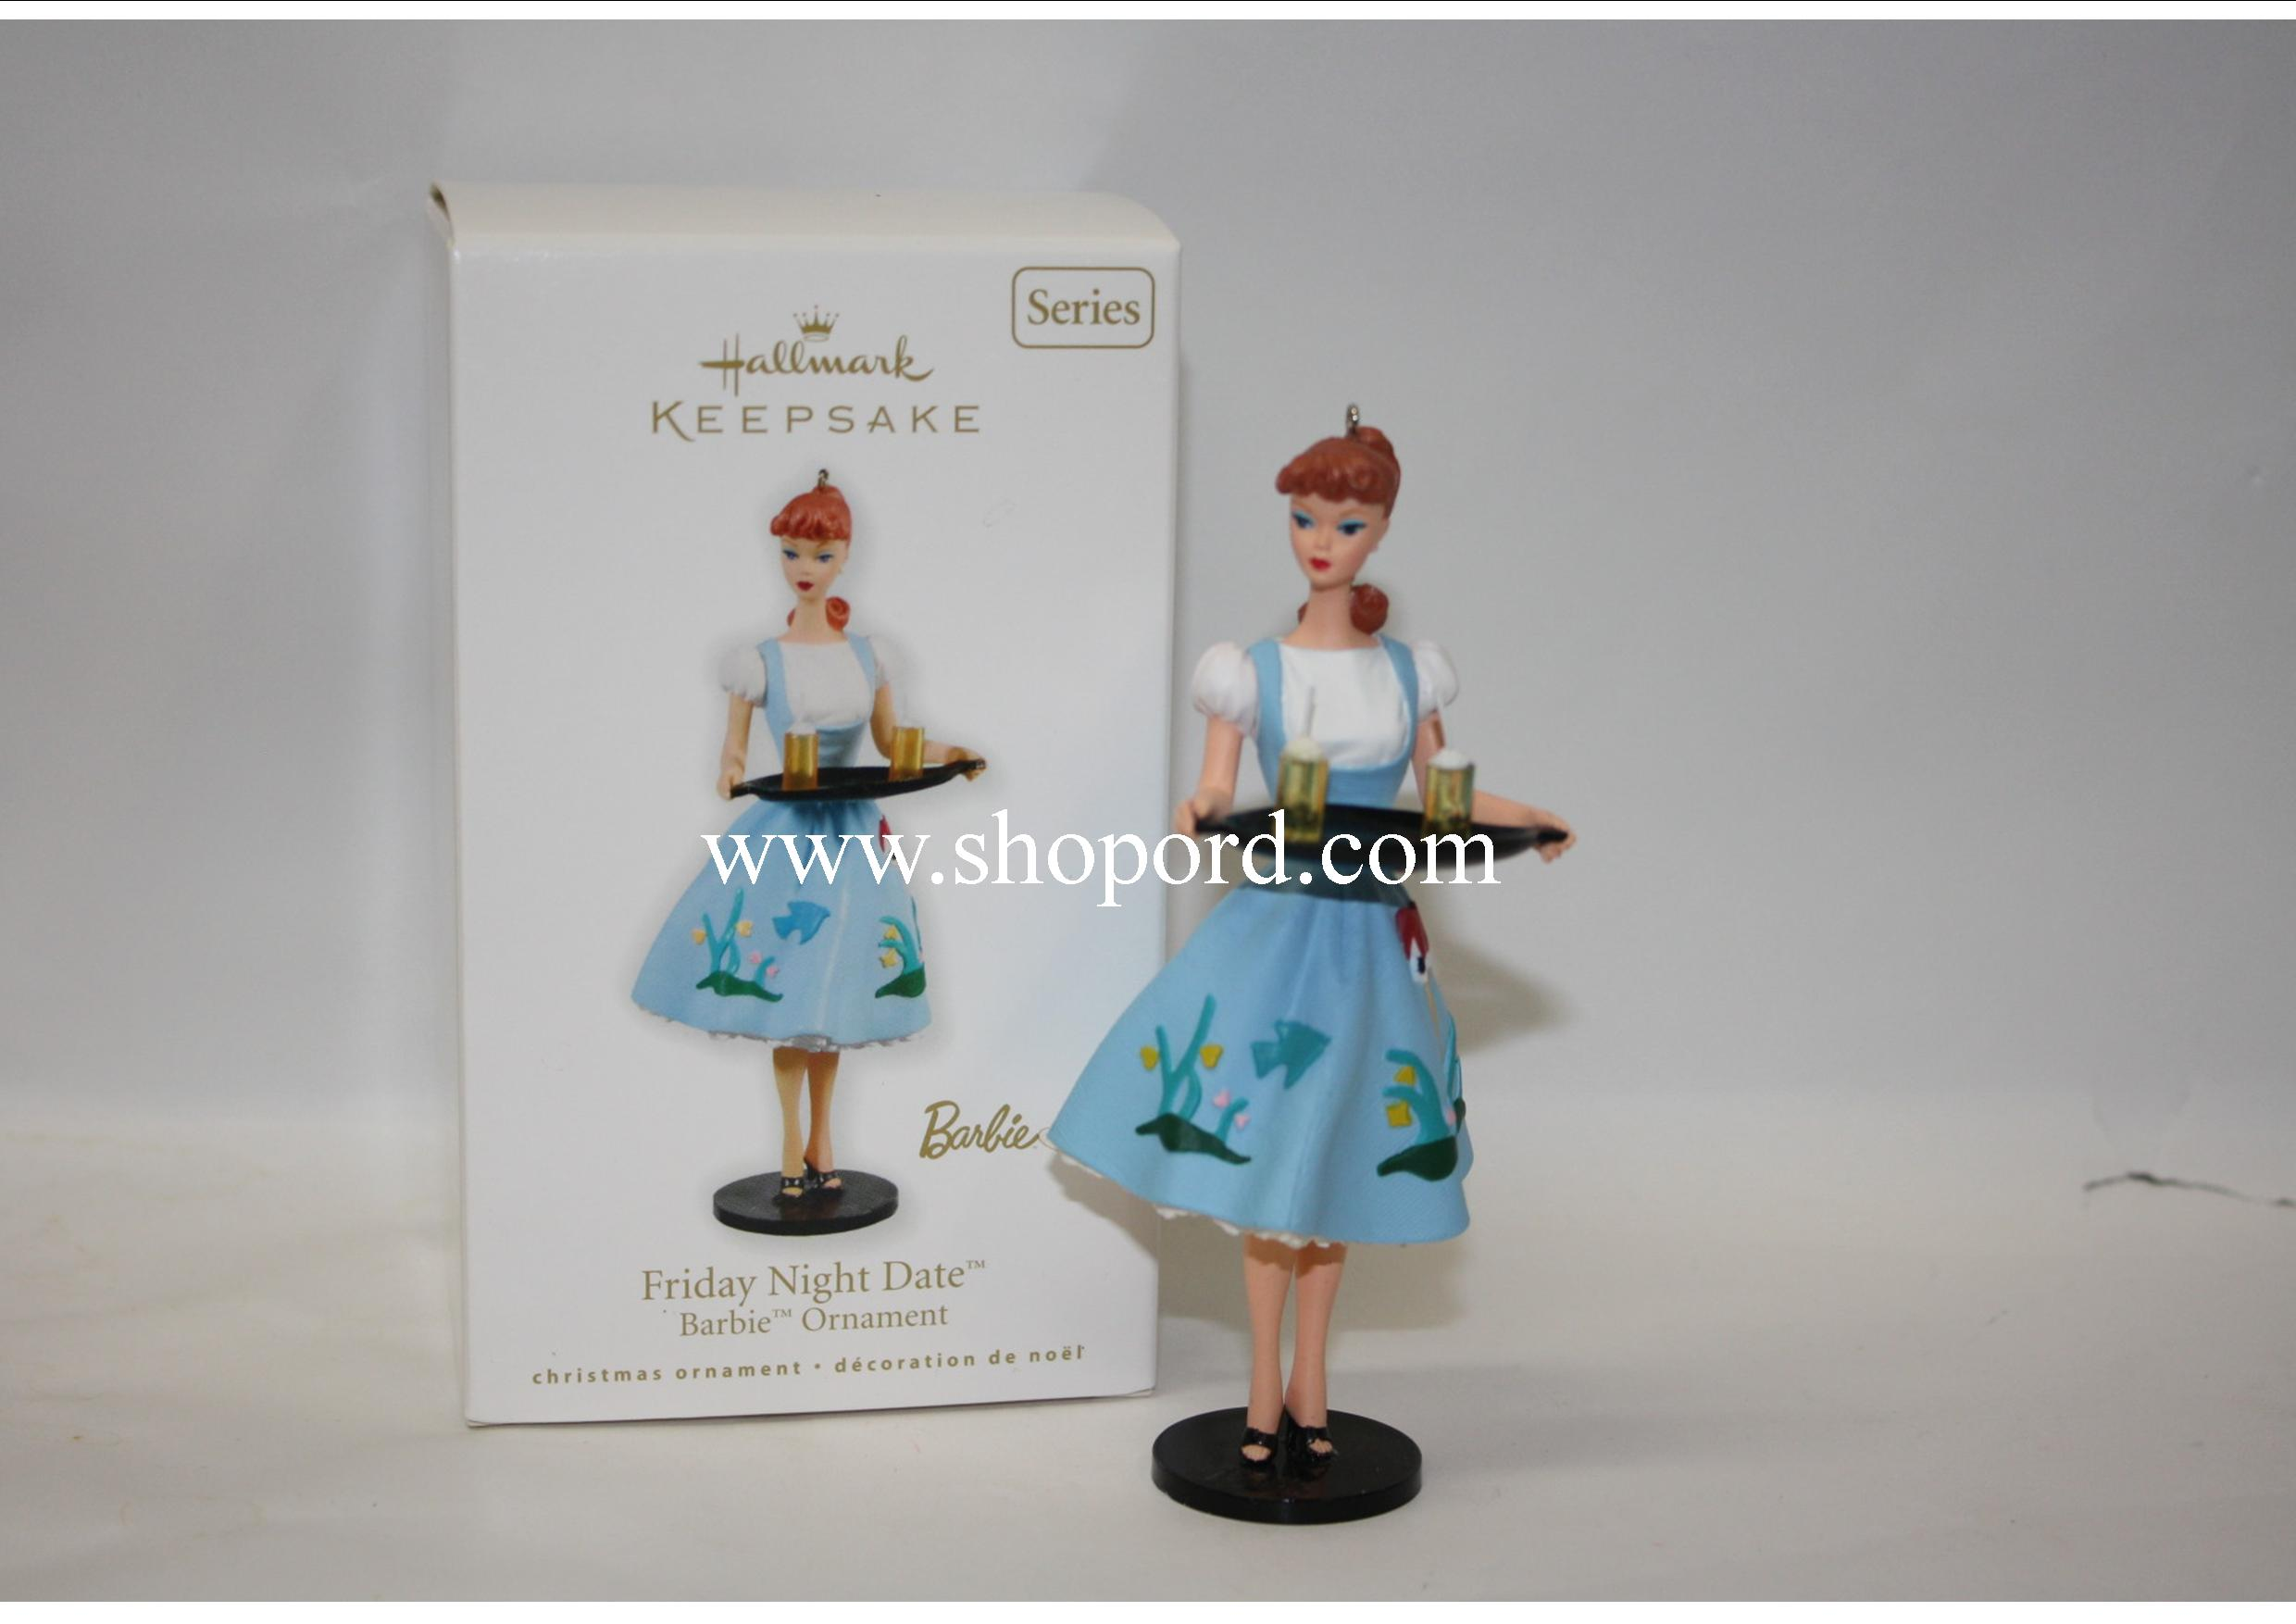 Hallmark 2010 Friday Night Date Barbie Ornament 17th in the Series QX8456